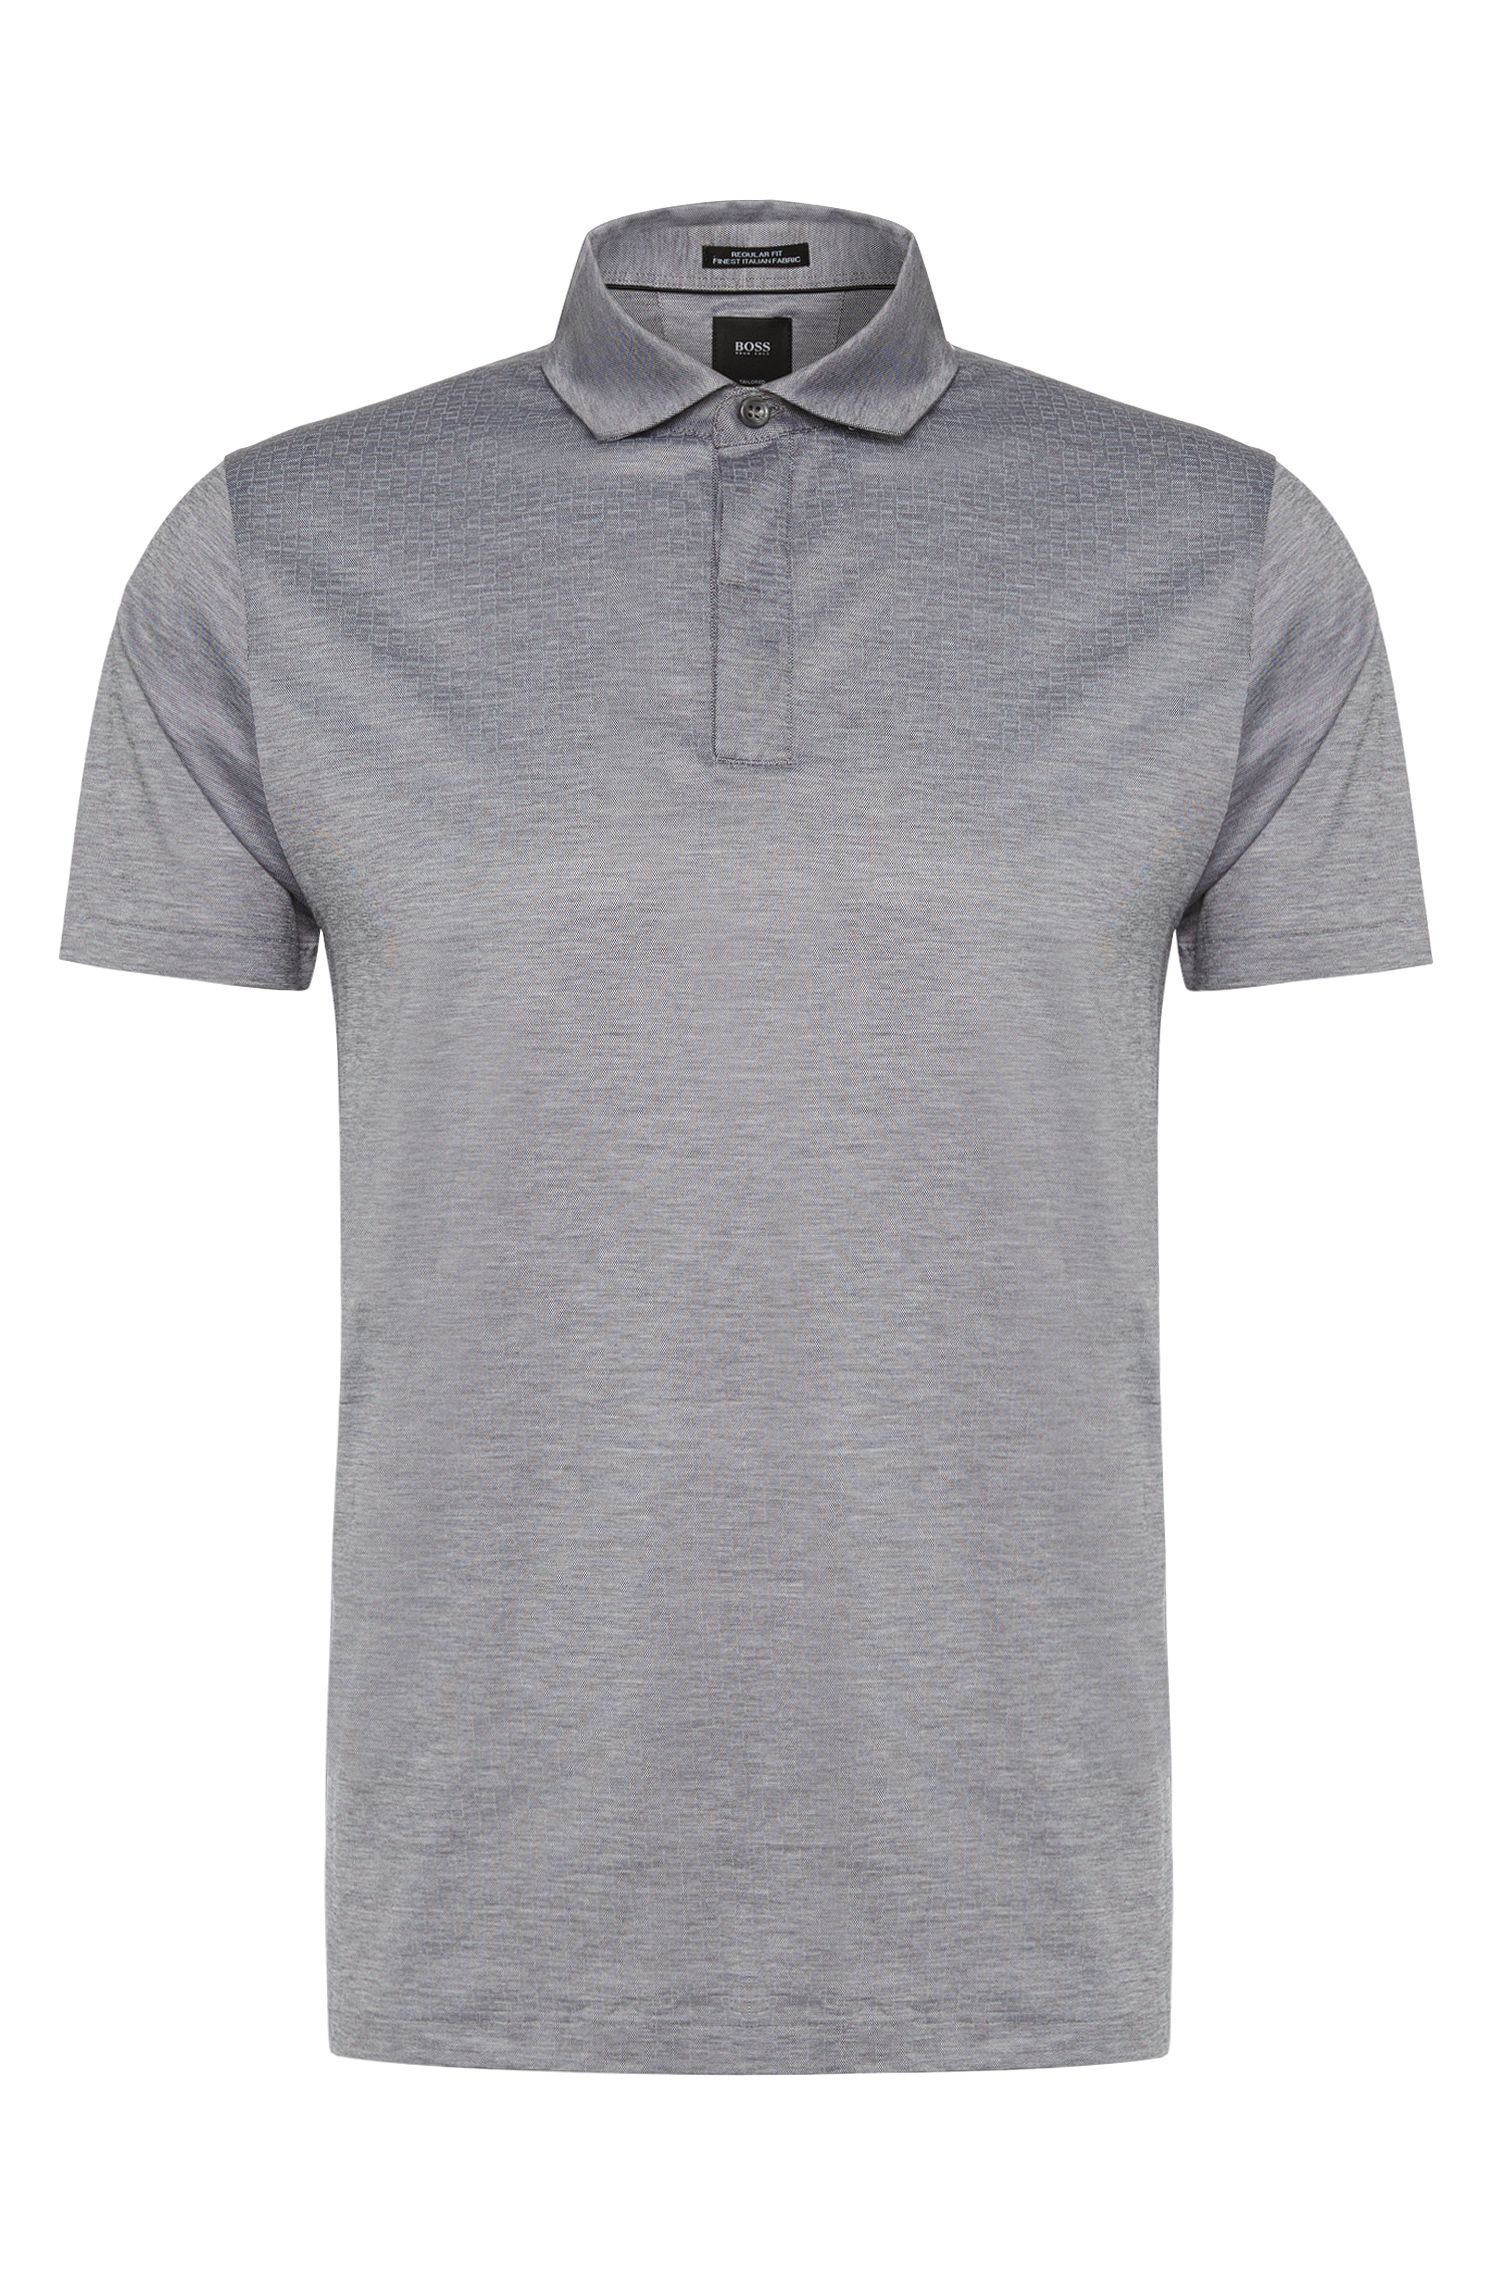 Meliertes Regular-Fit Tailored Poloshirt aus Baumwolle: 'T-Perkins 06'